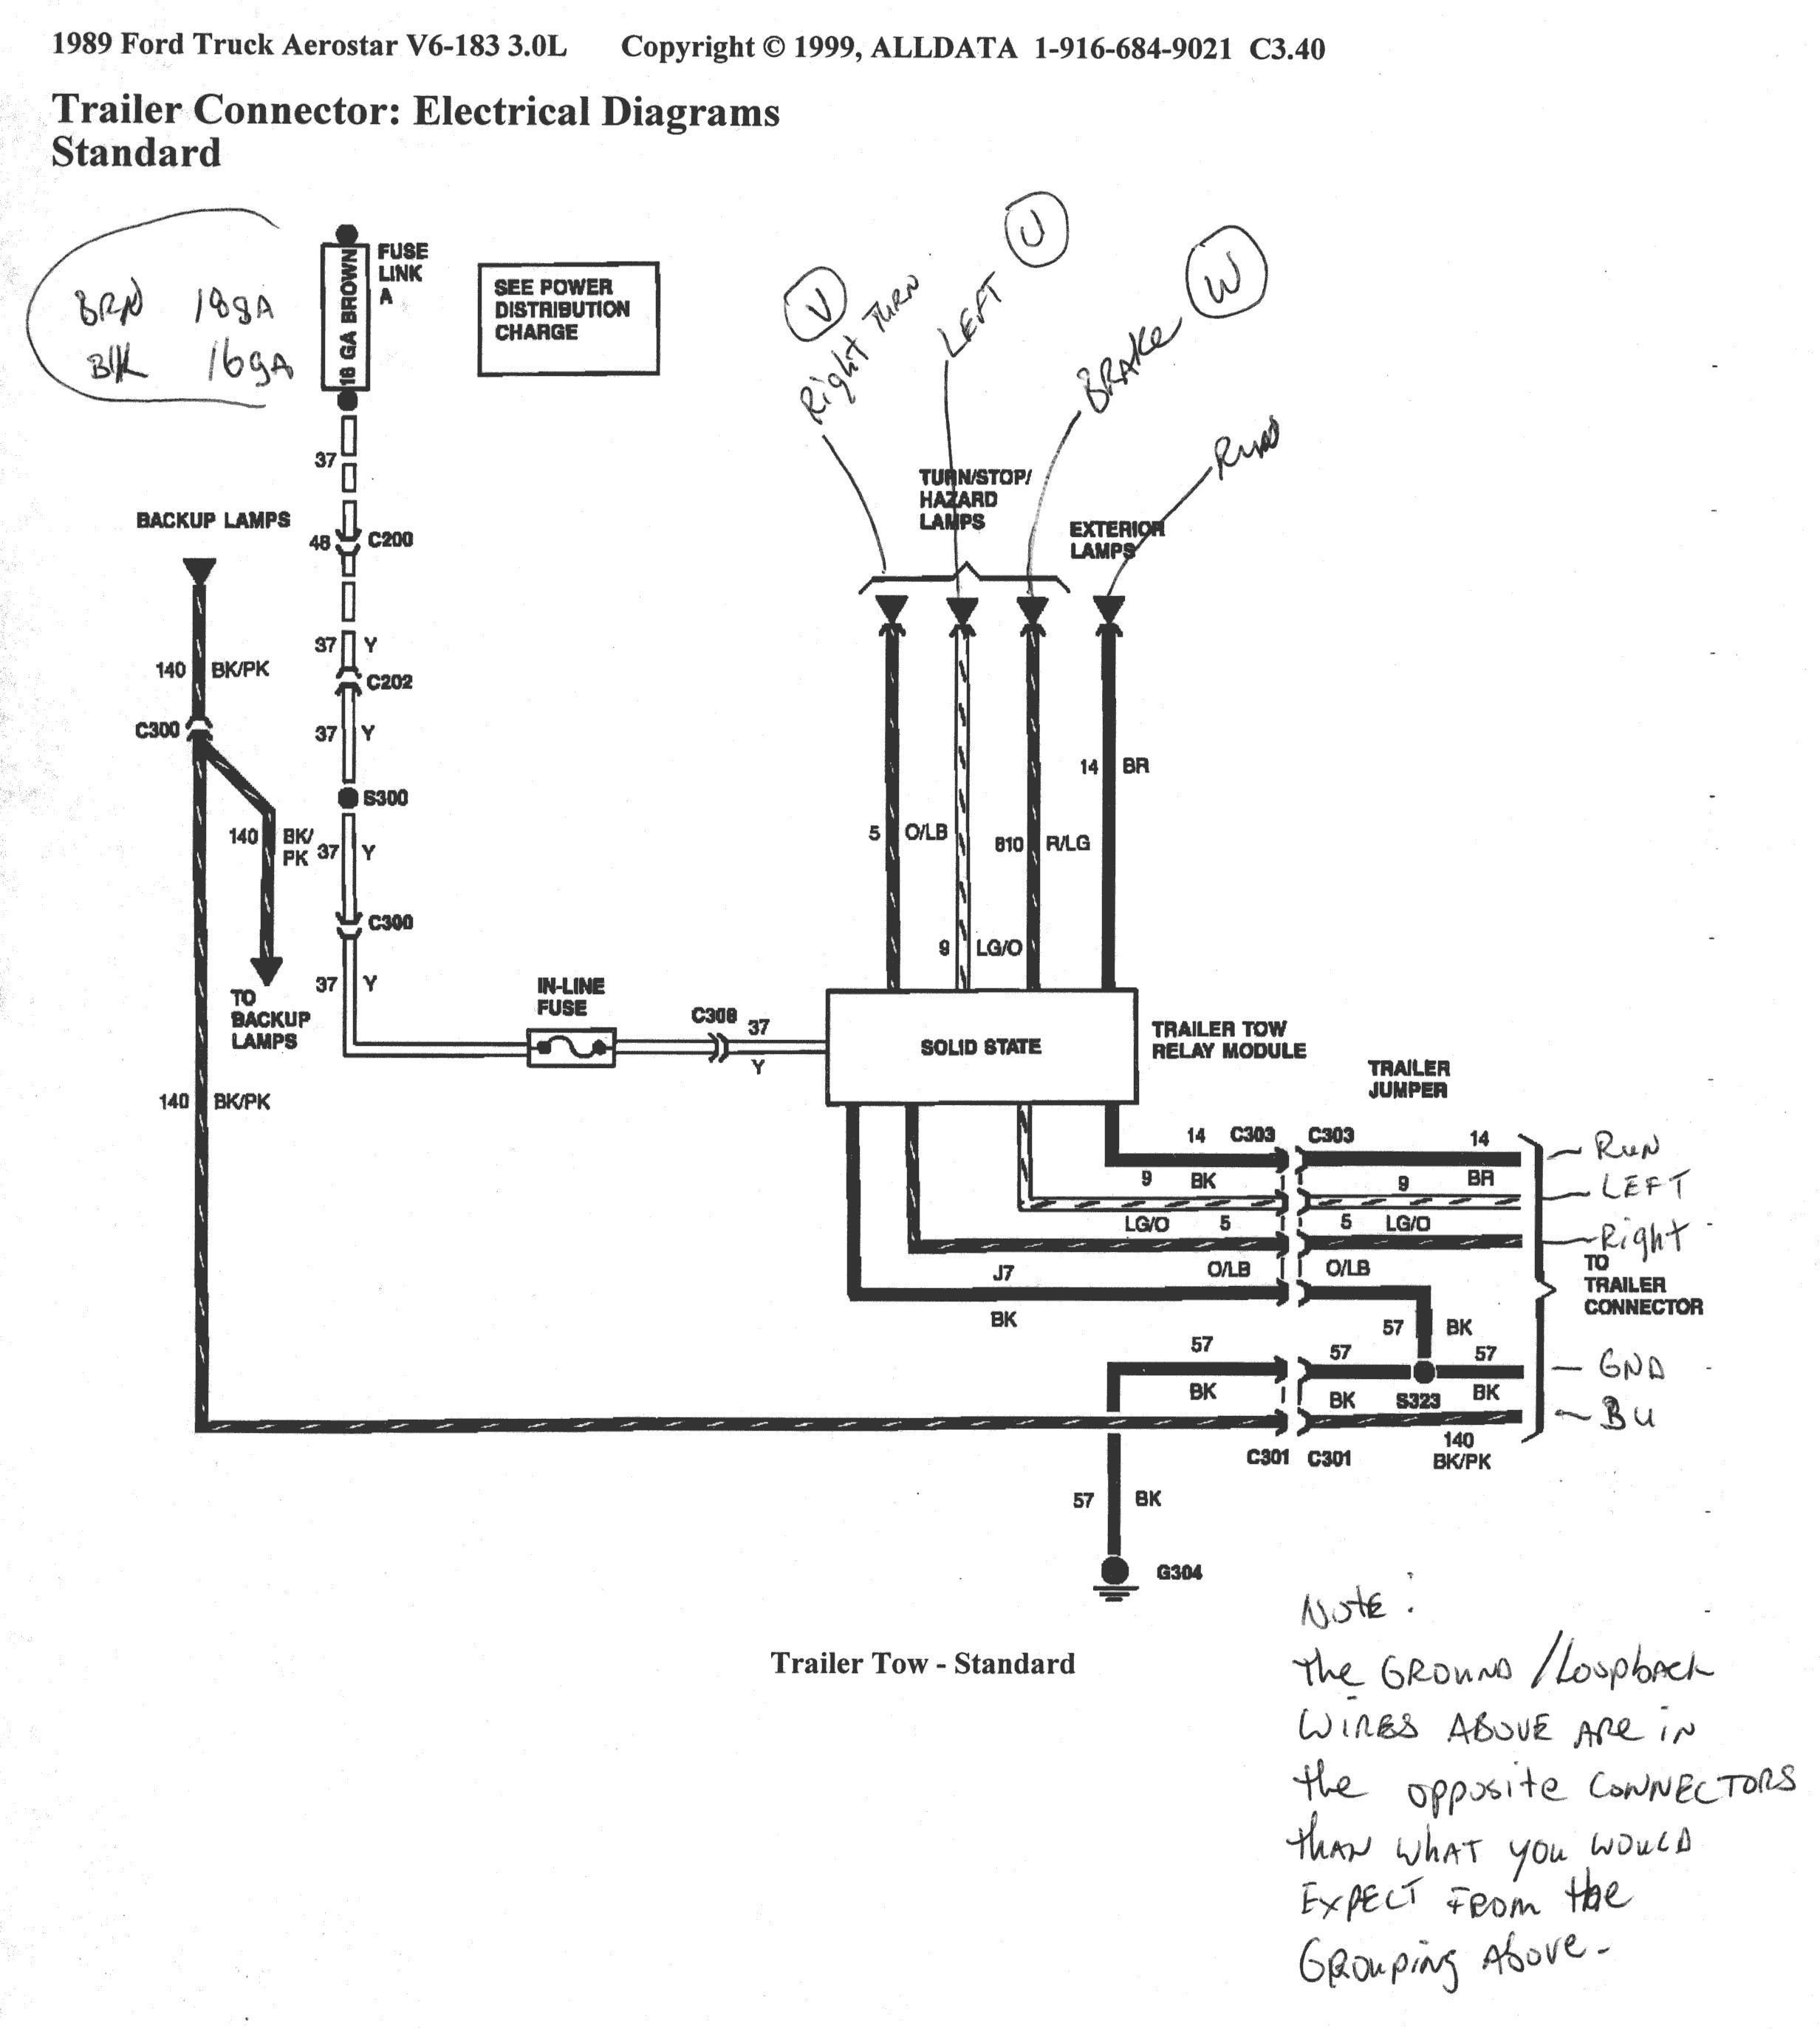 f250 trailer wiring ford f 150 diagram wiring schematic 1999 ford f150 wiring diagram free download 1999 ford f150 wiring diagram download #13